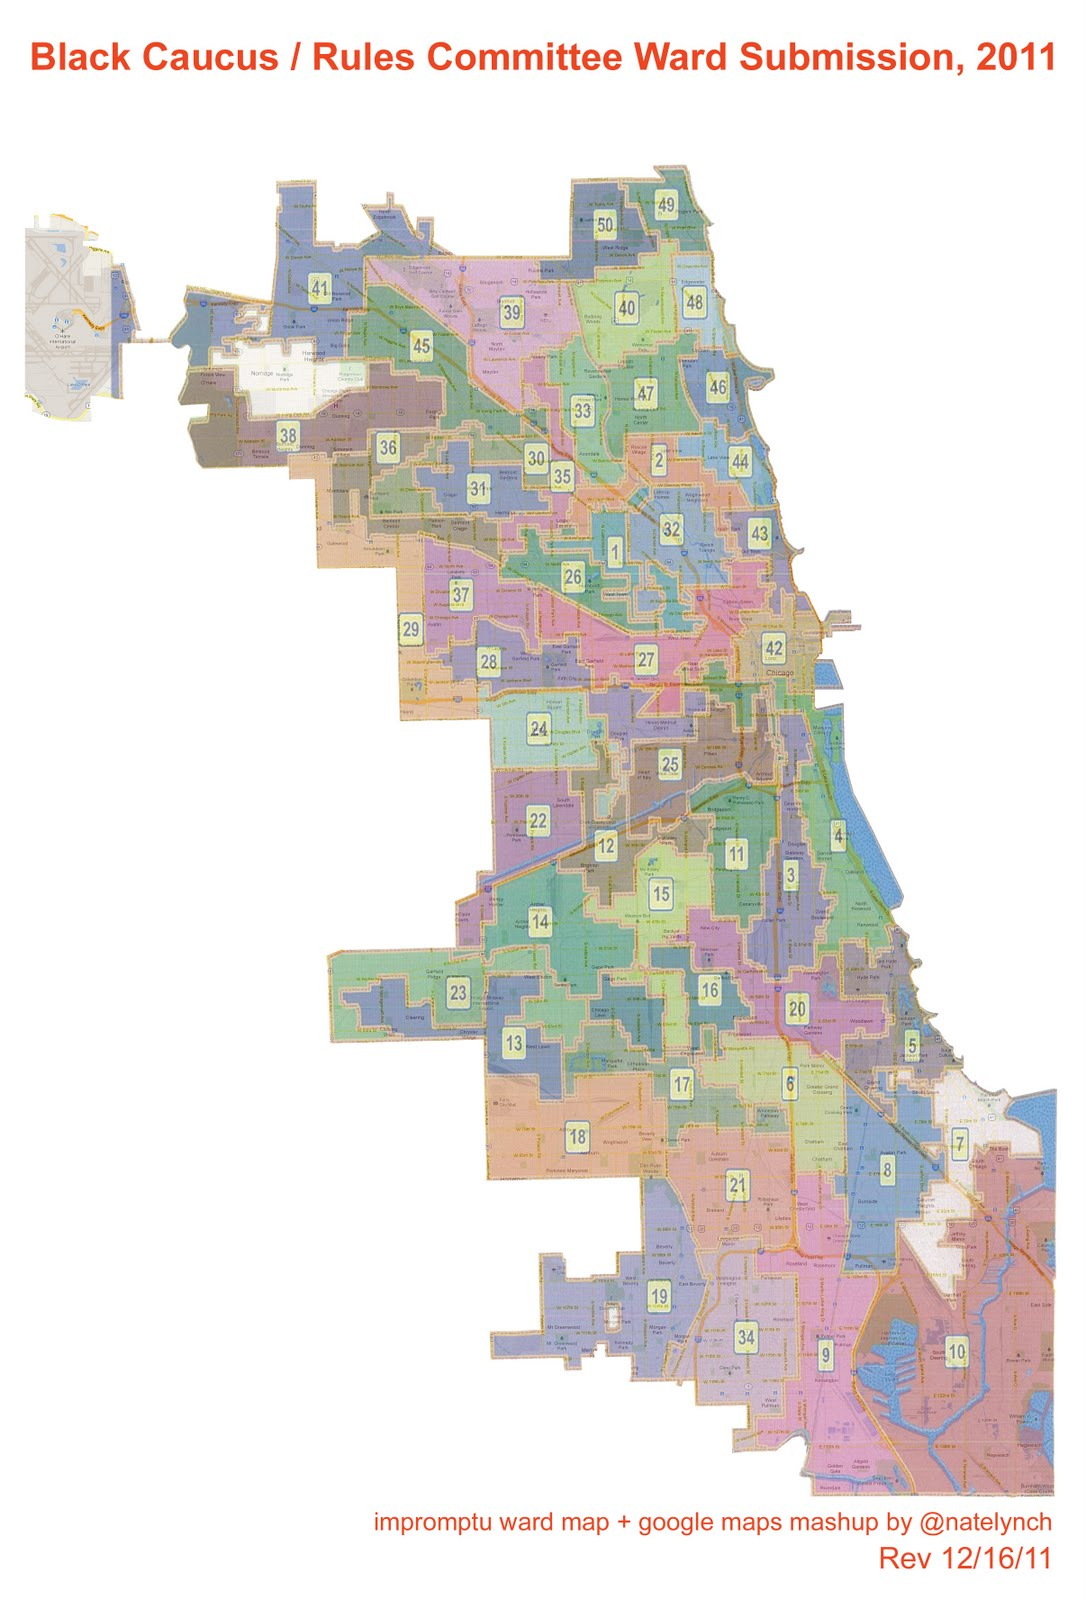 41st Ward Citizen's Blog: Chicago's